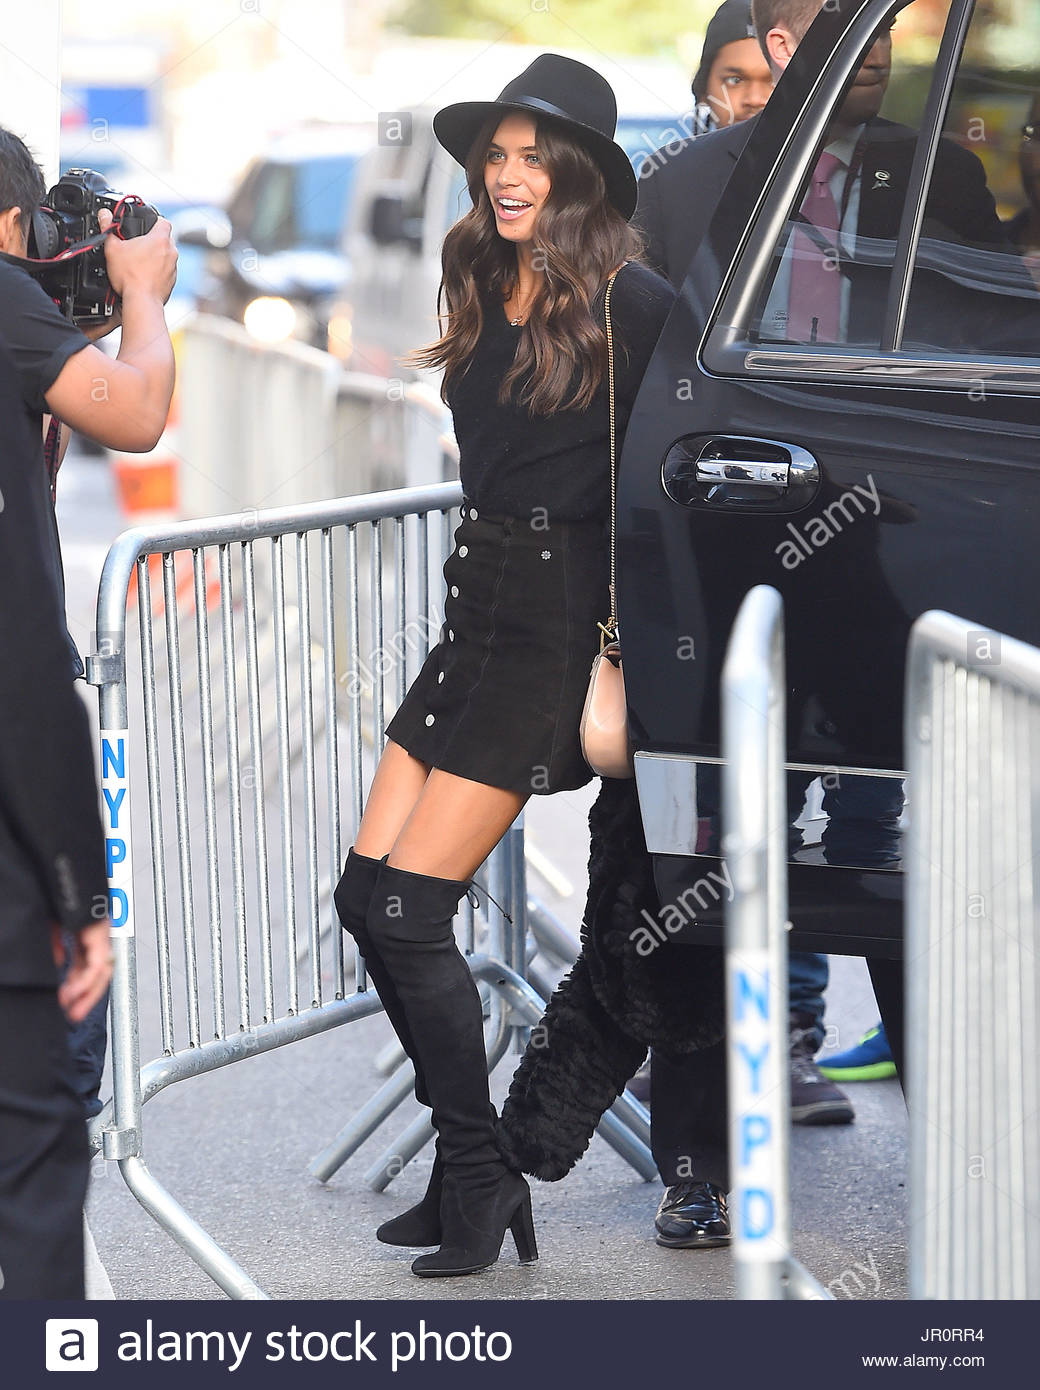 Black Knee High Boots Stock Photos Amp Black Knee High Boots